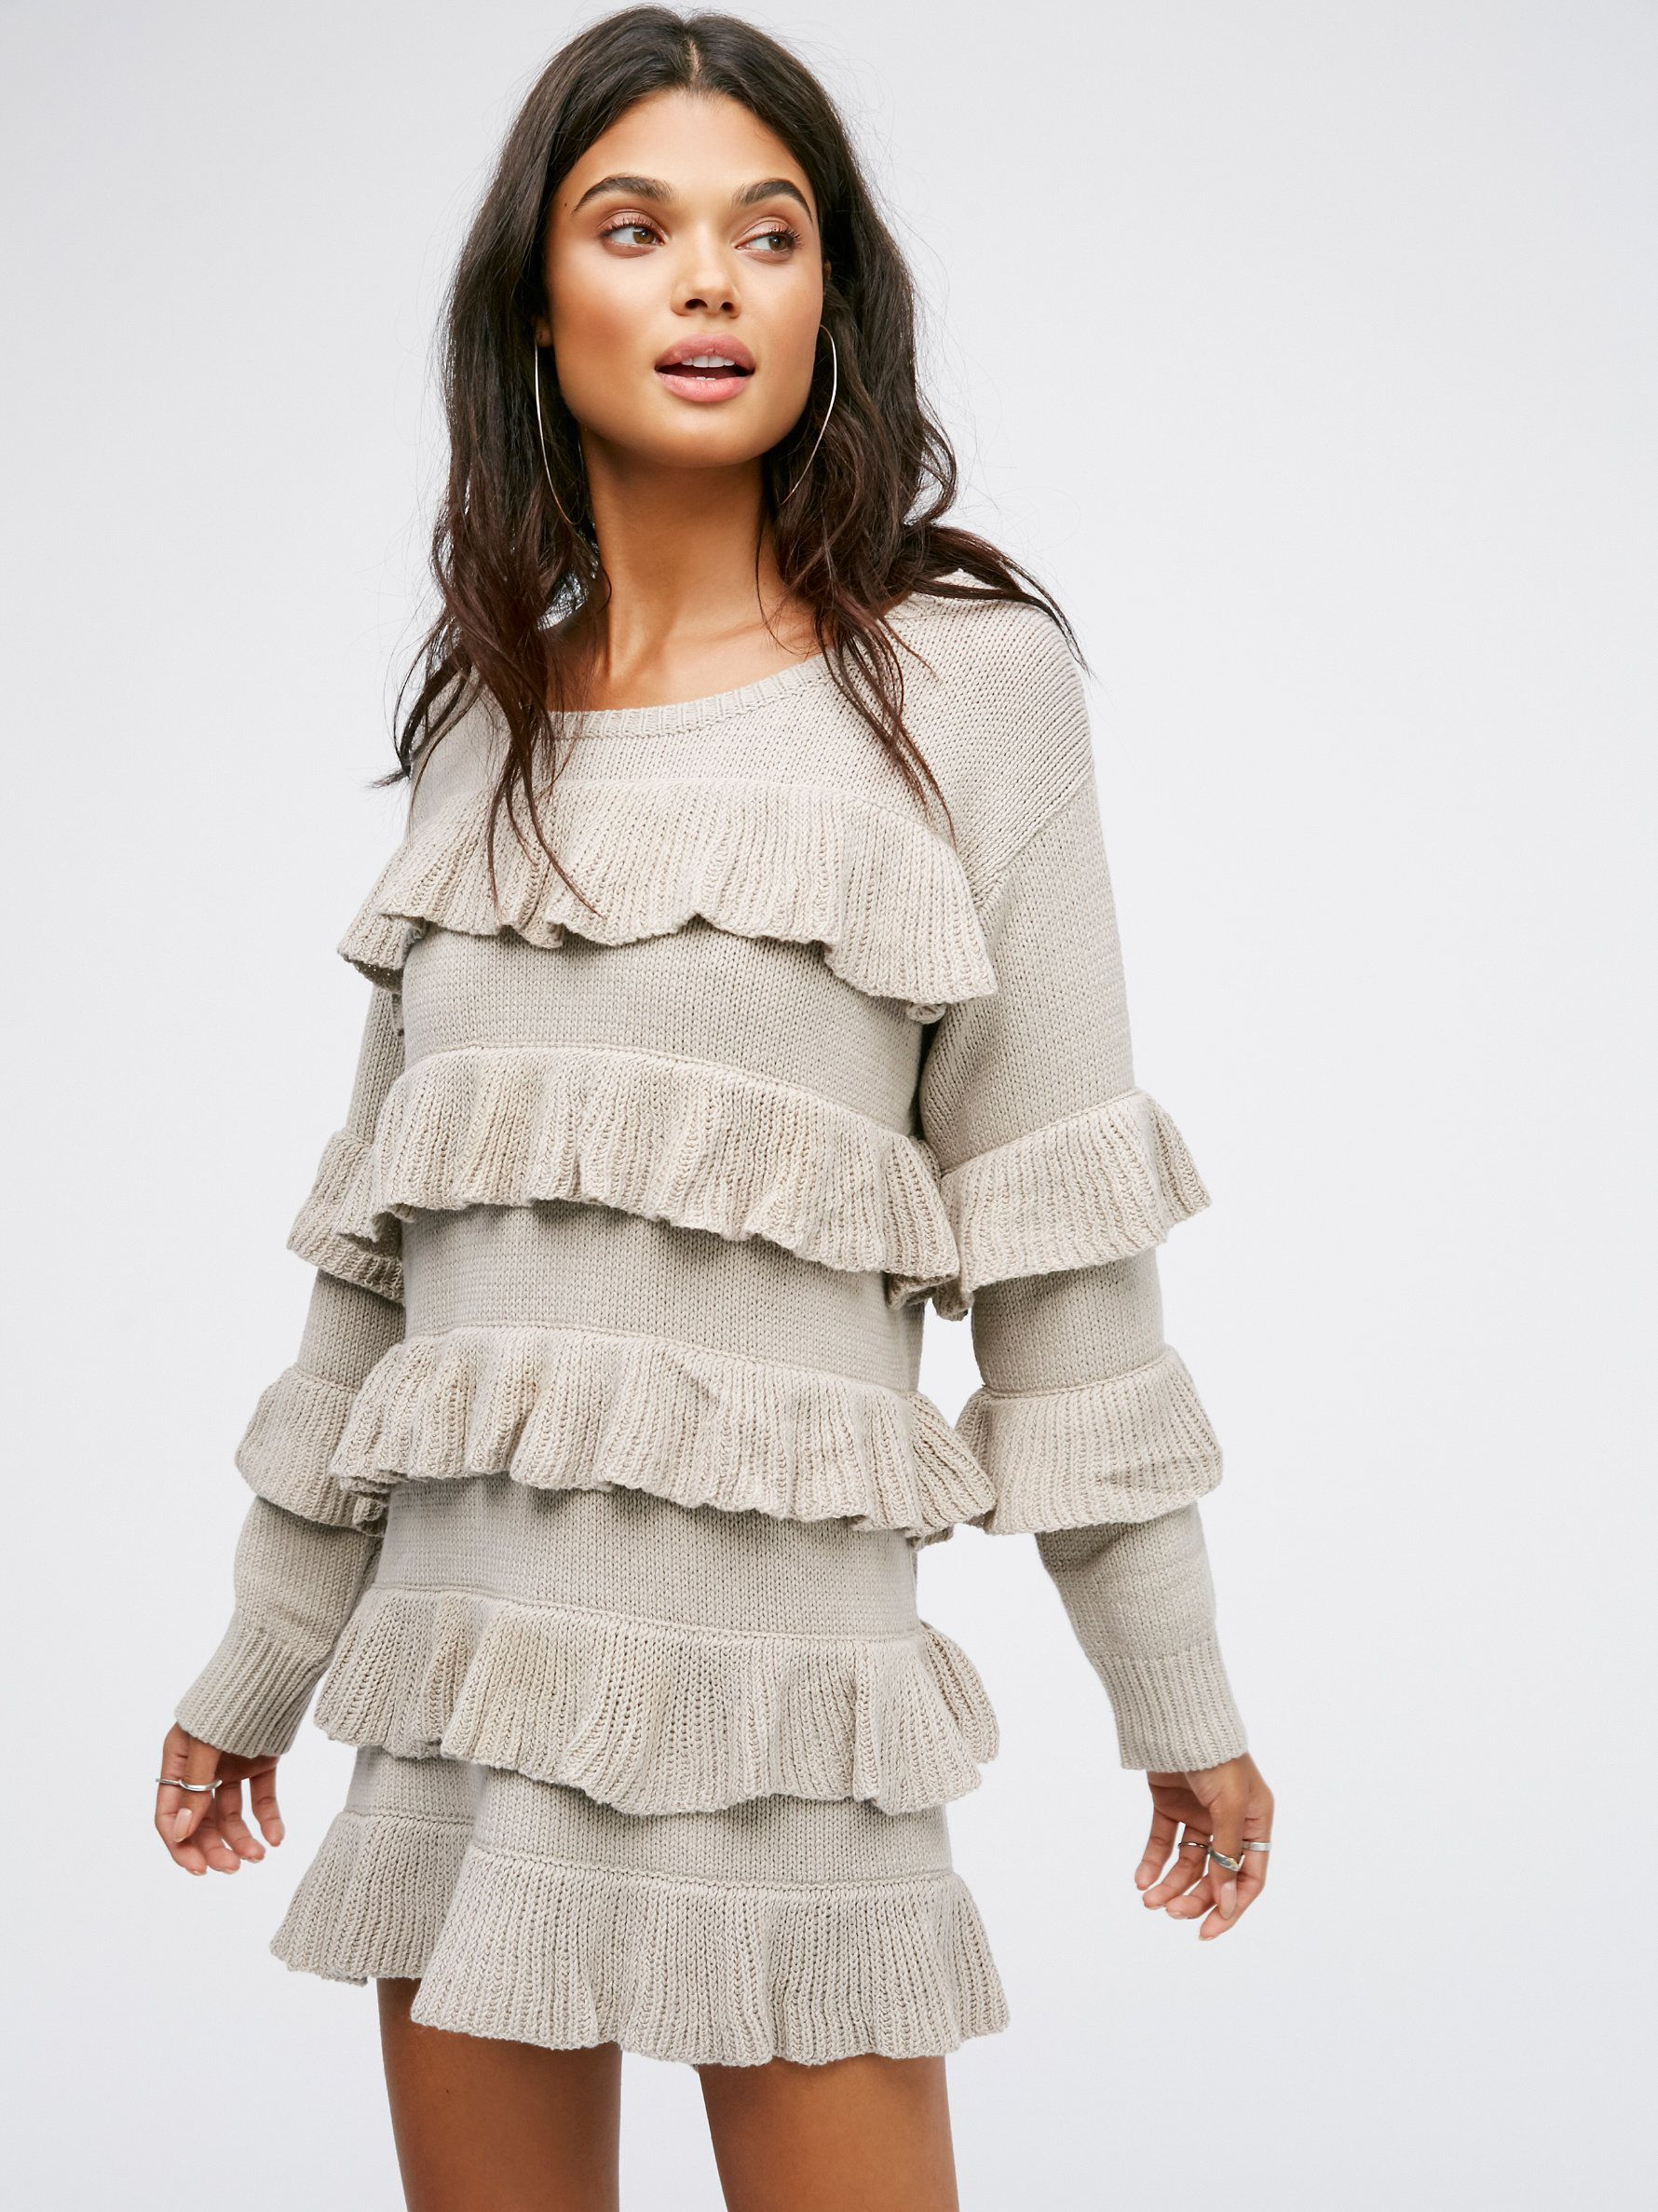 El Dorado Poncho Dress   Long sleeve knit dress with a simple silhouette featuring bold ruffle accents throughout. Ribbed accents at the neckline and sleeve cuffs.